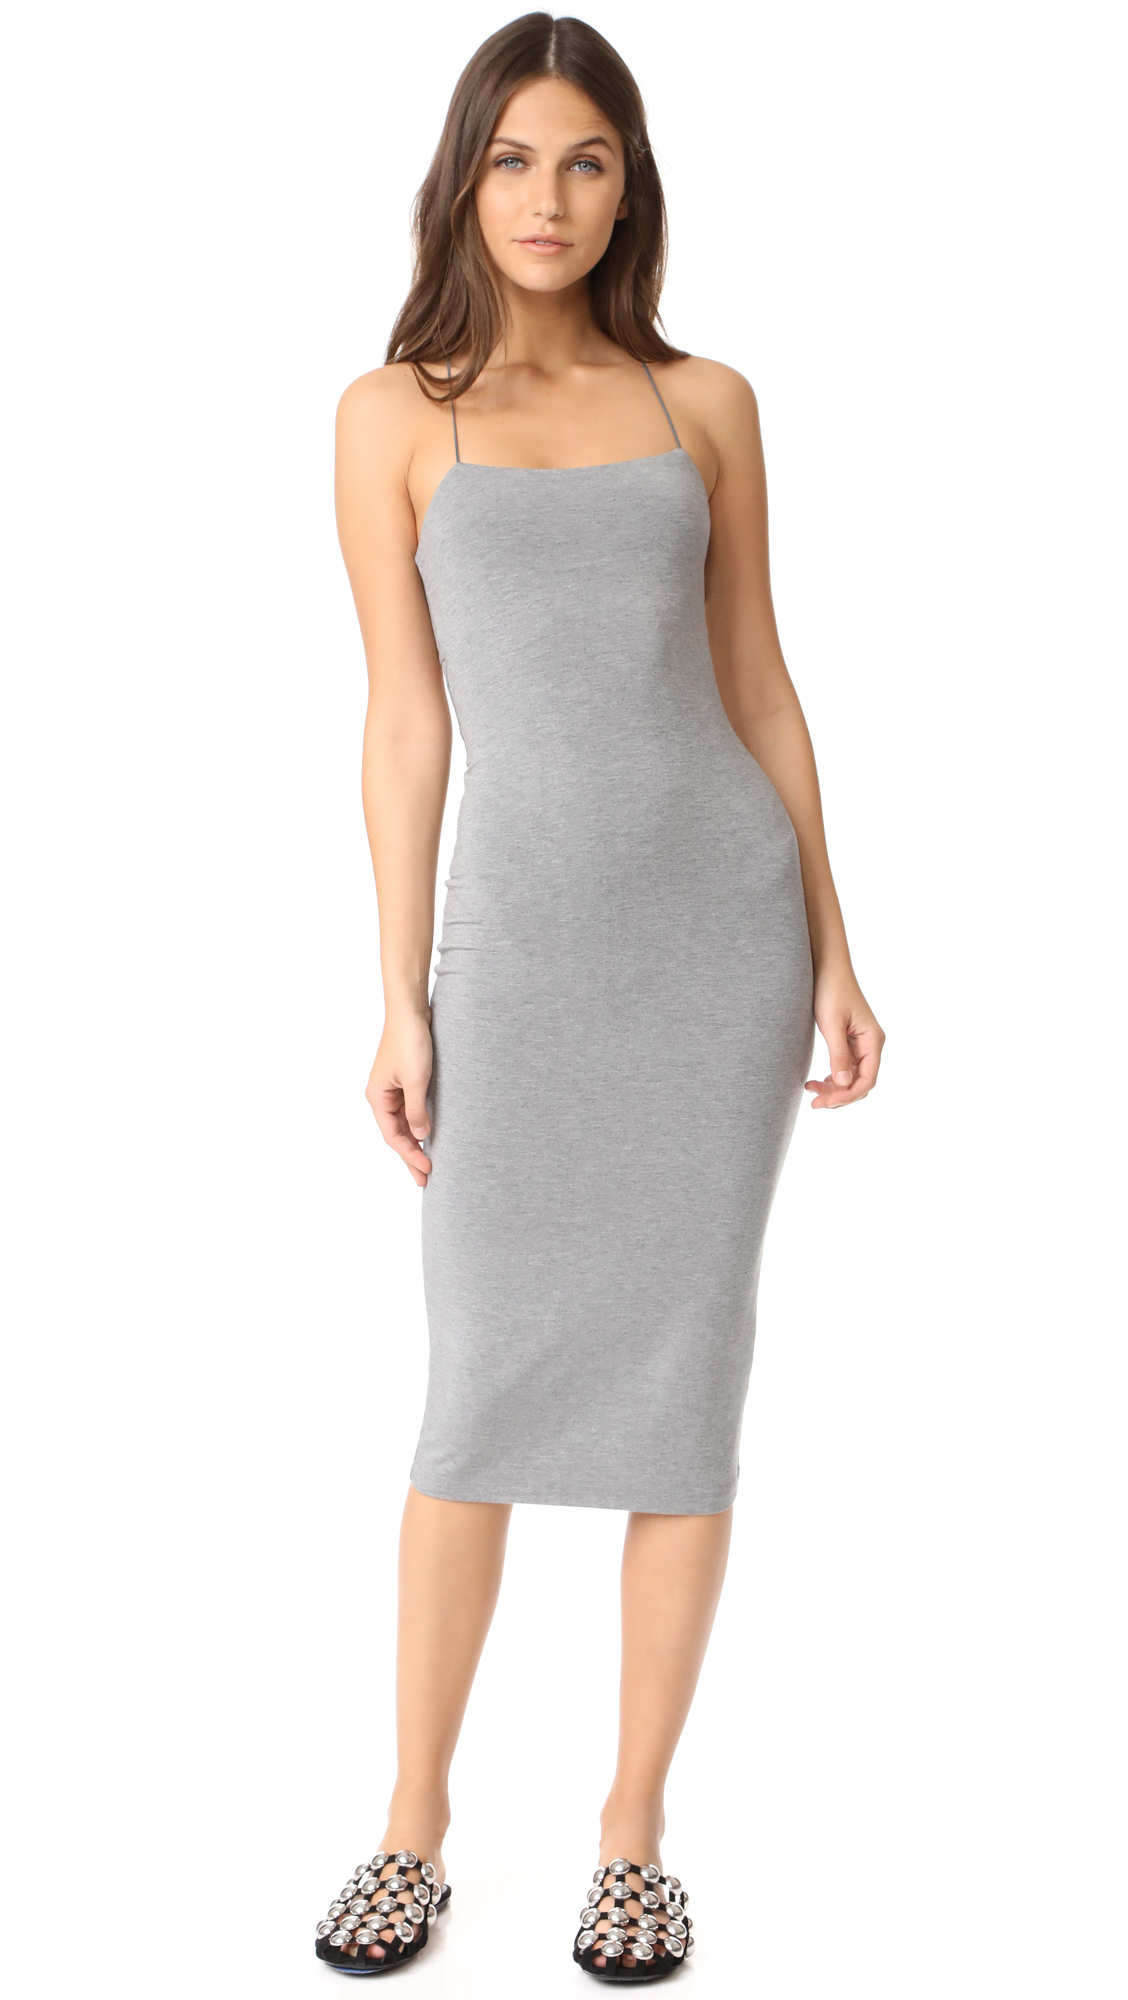 T by Alexander Wang Strappy Tank Dress - Heather Grey